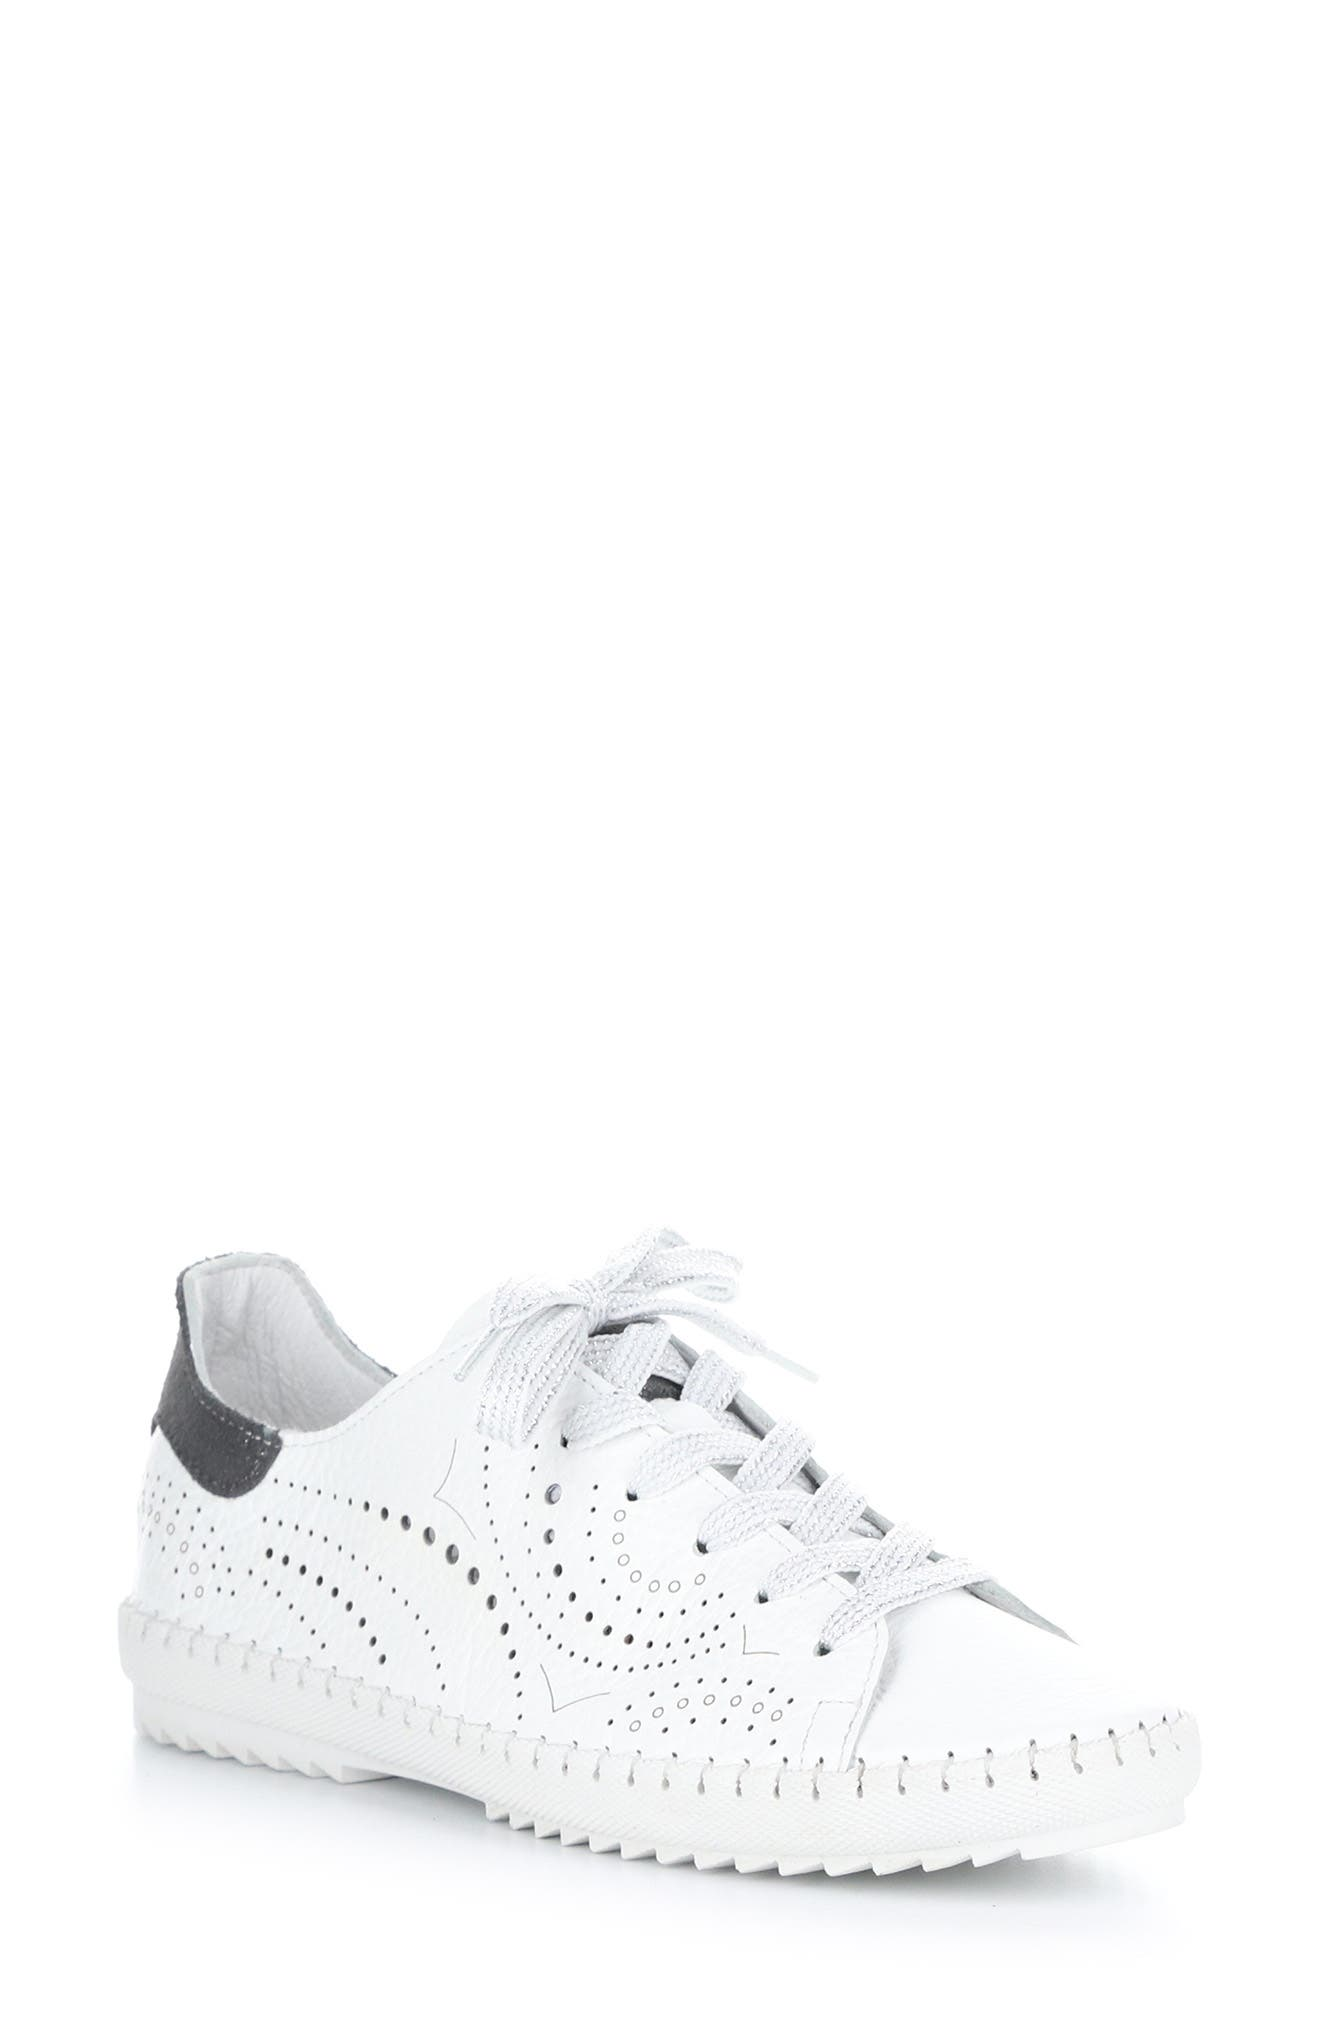 Oxley Lace-Up Sneaker